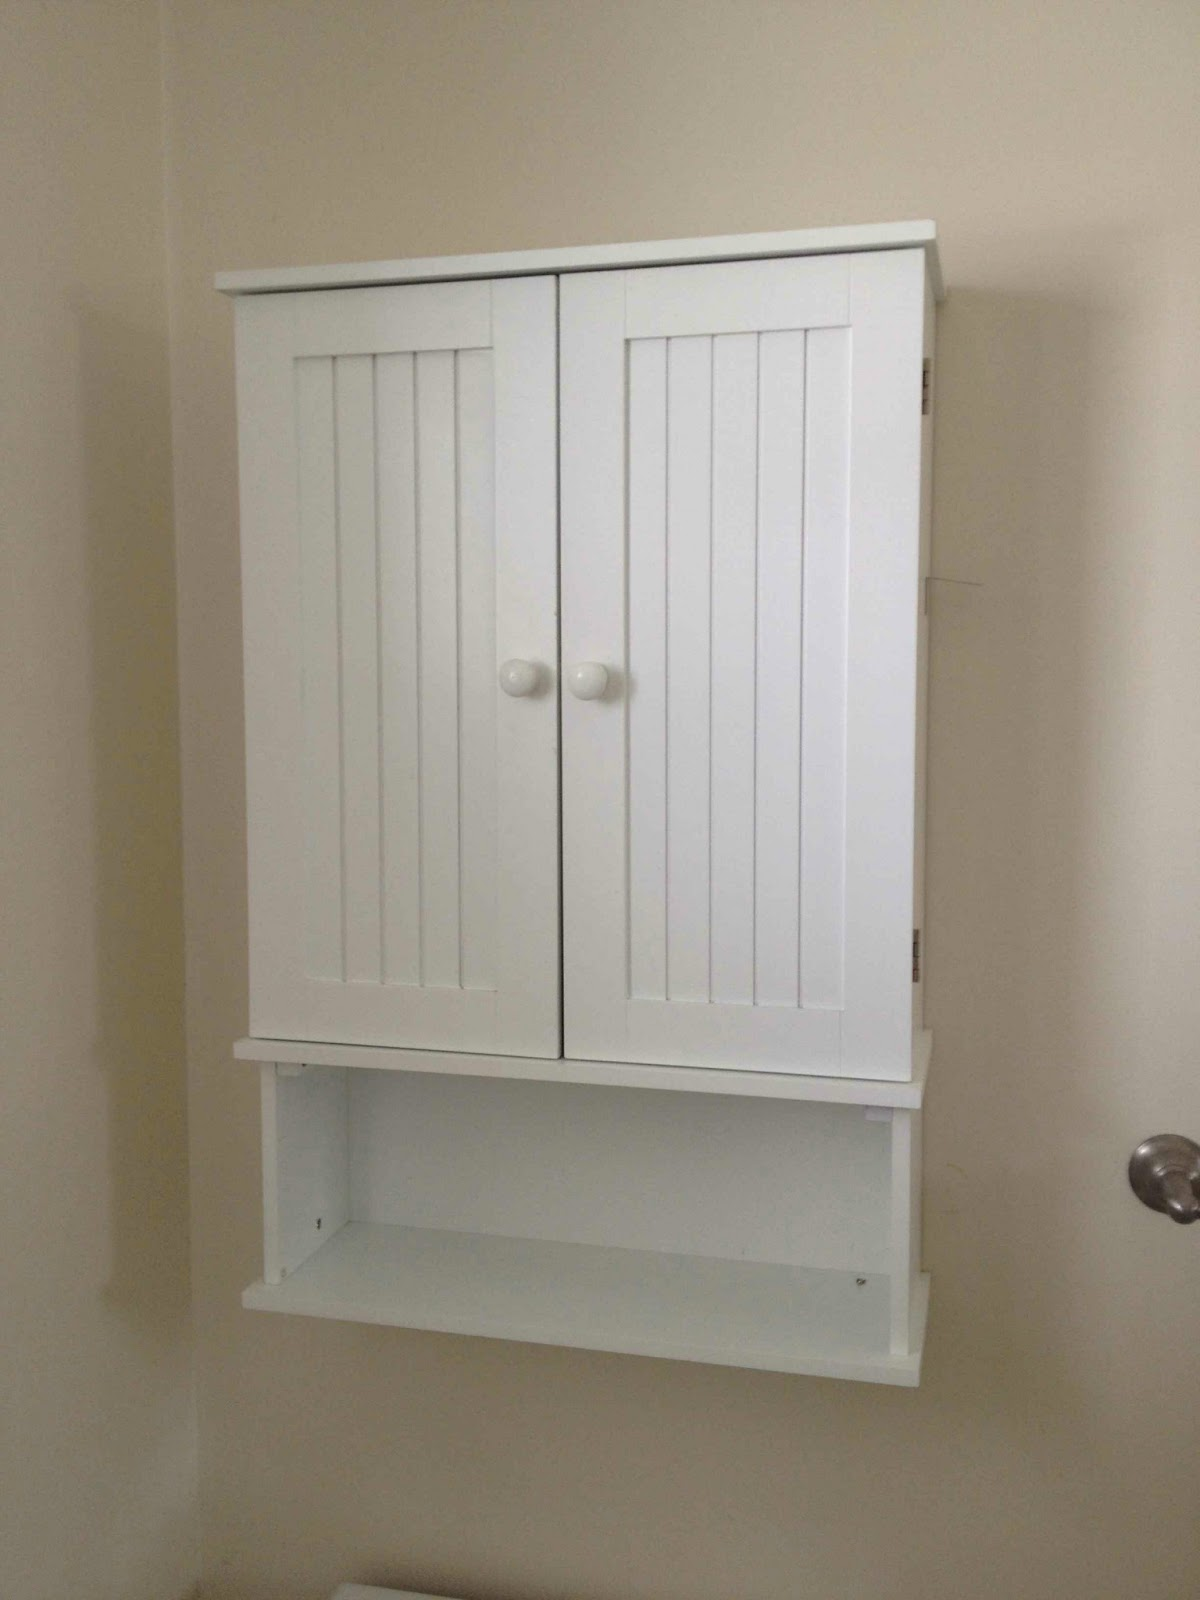 Gallery For Bathroom Cabinet Over Toilet